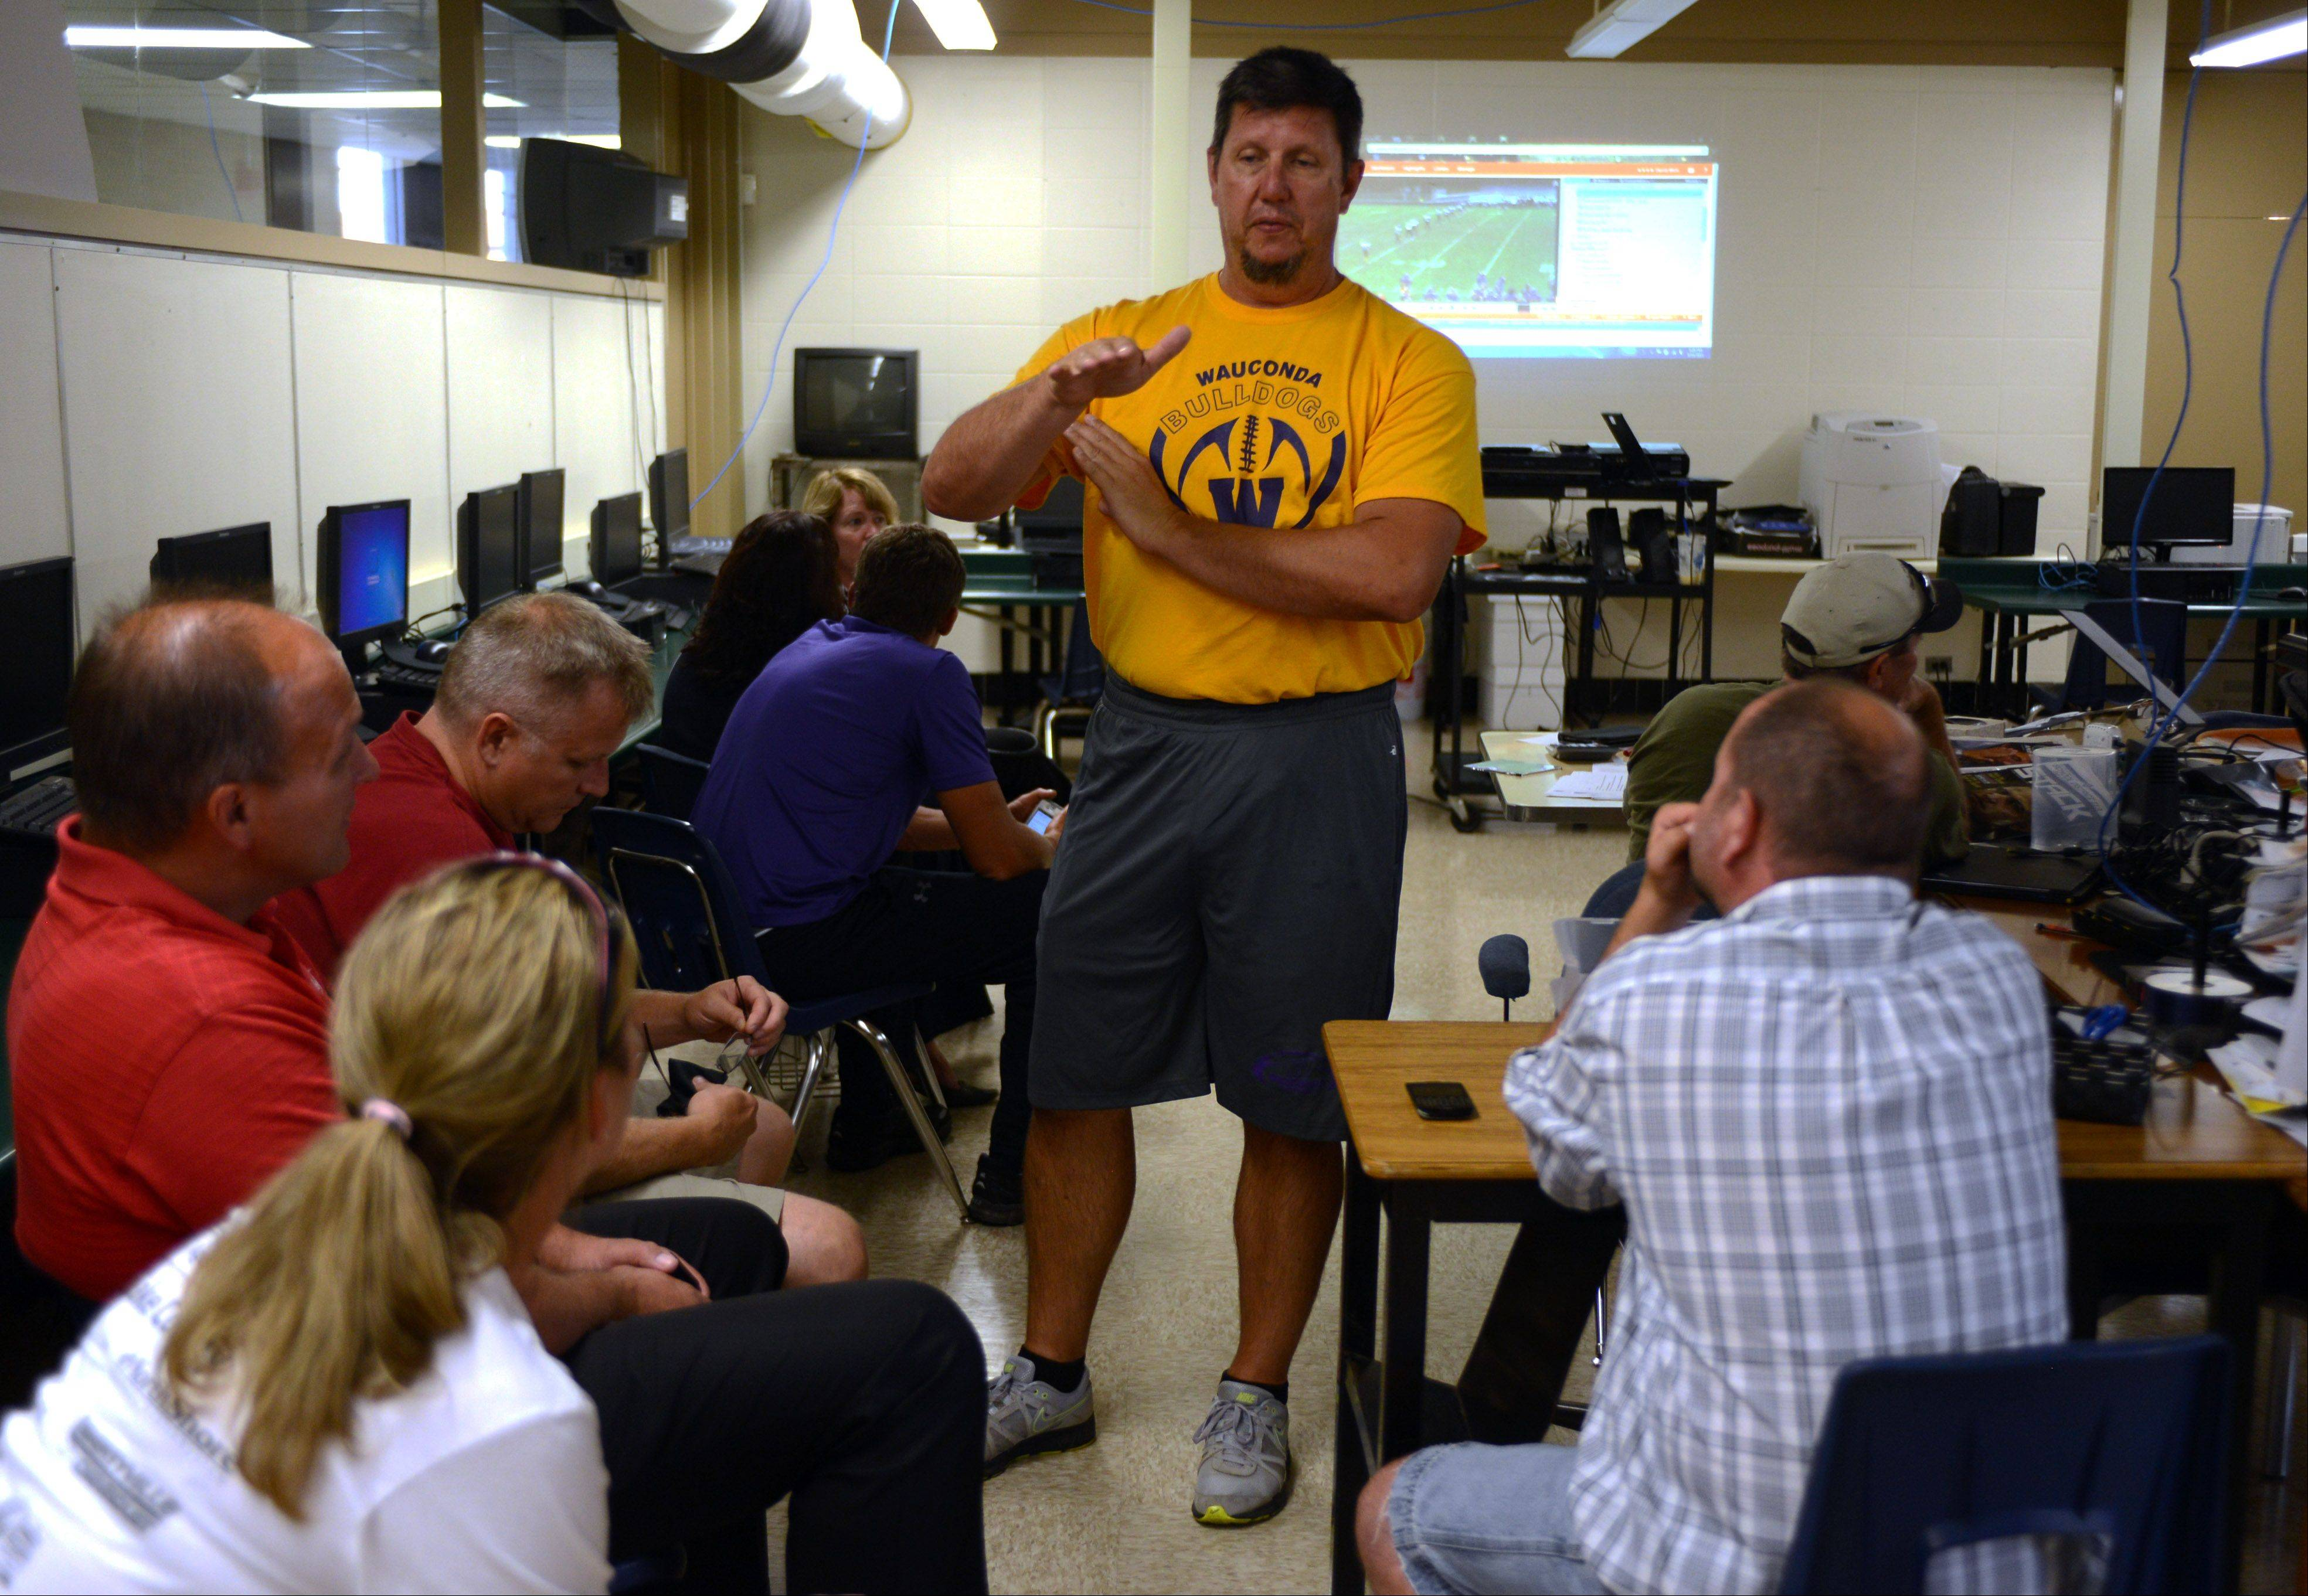 Wauconda coach Dave Mills talks to players' parents before Tuesday night's practice at the school.